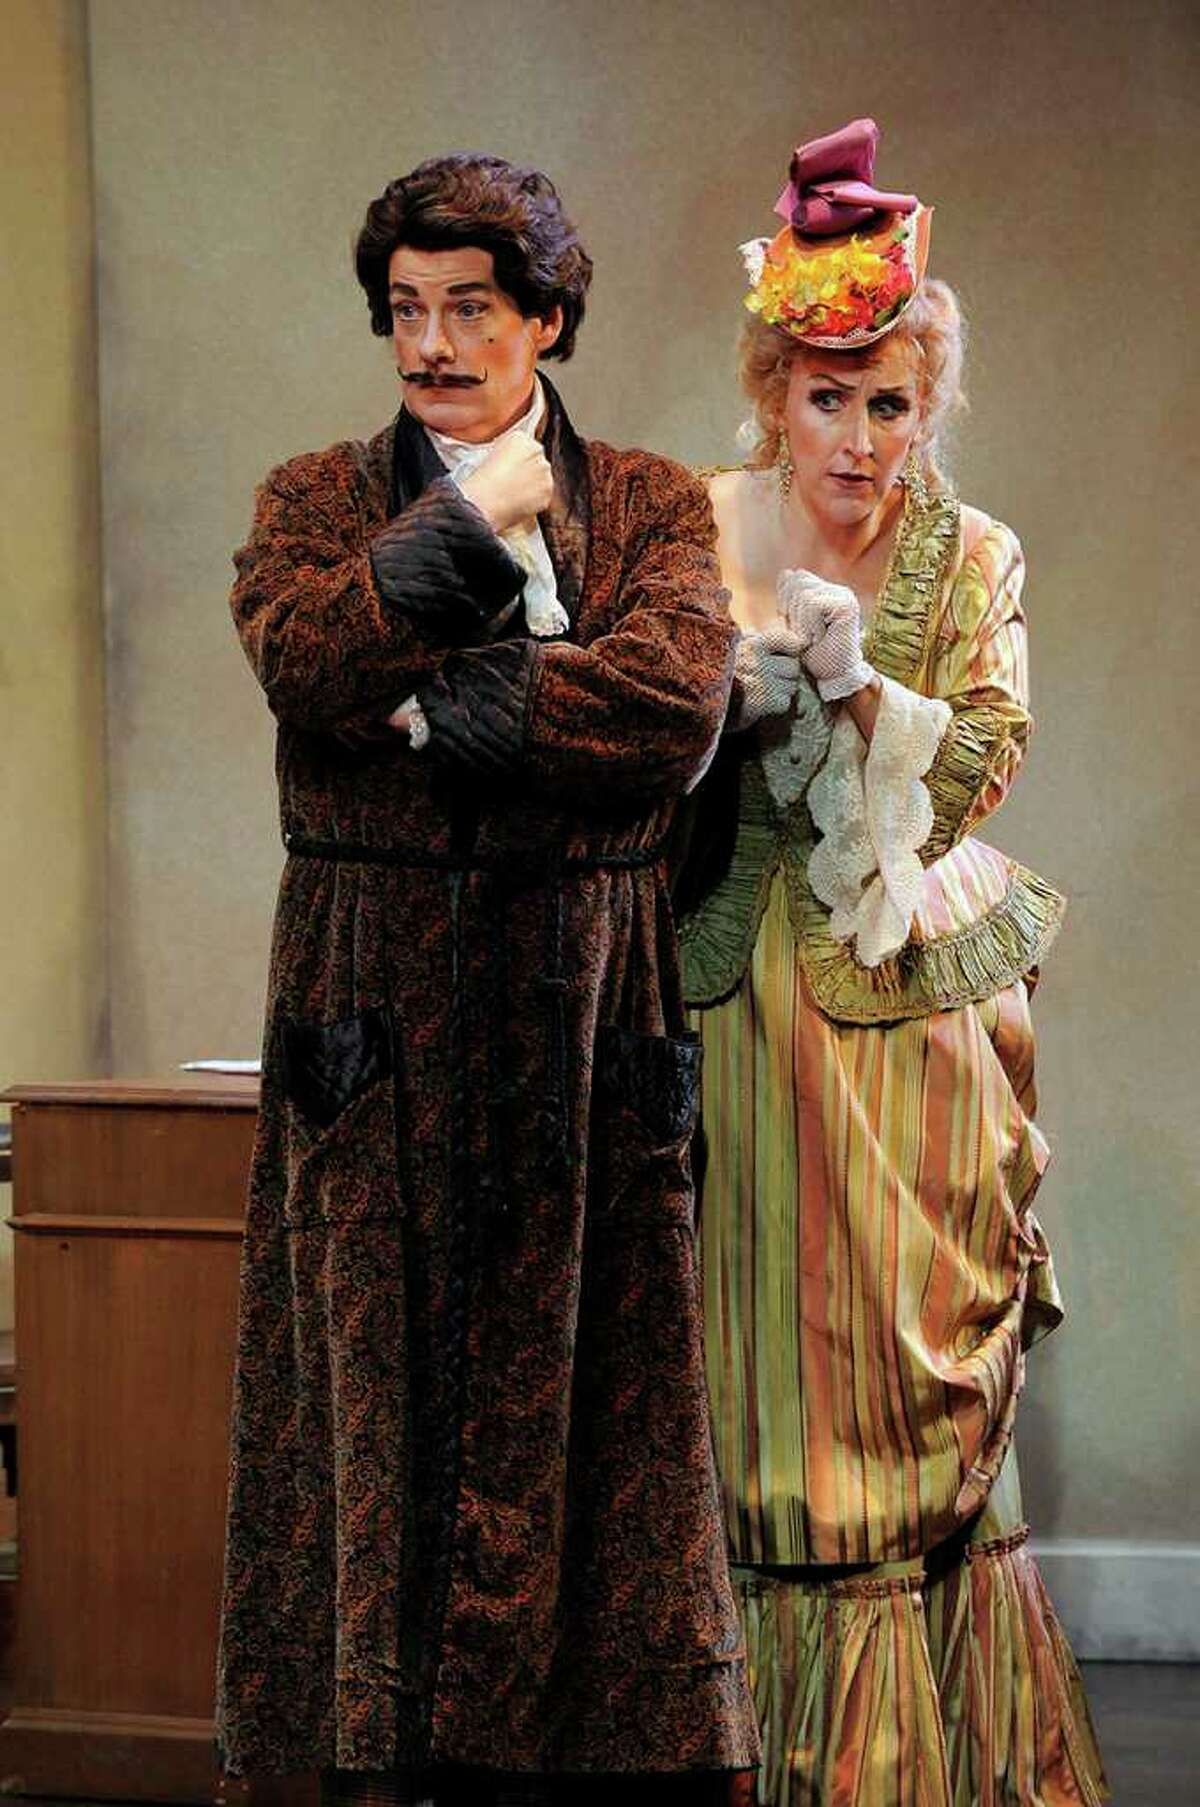 John Easterlin as Alfred & Emily Pulley as Rosalinda in Opera Saratoga's production of Strauss'